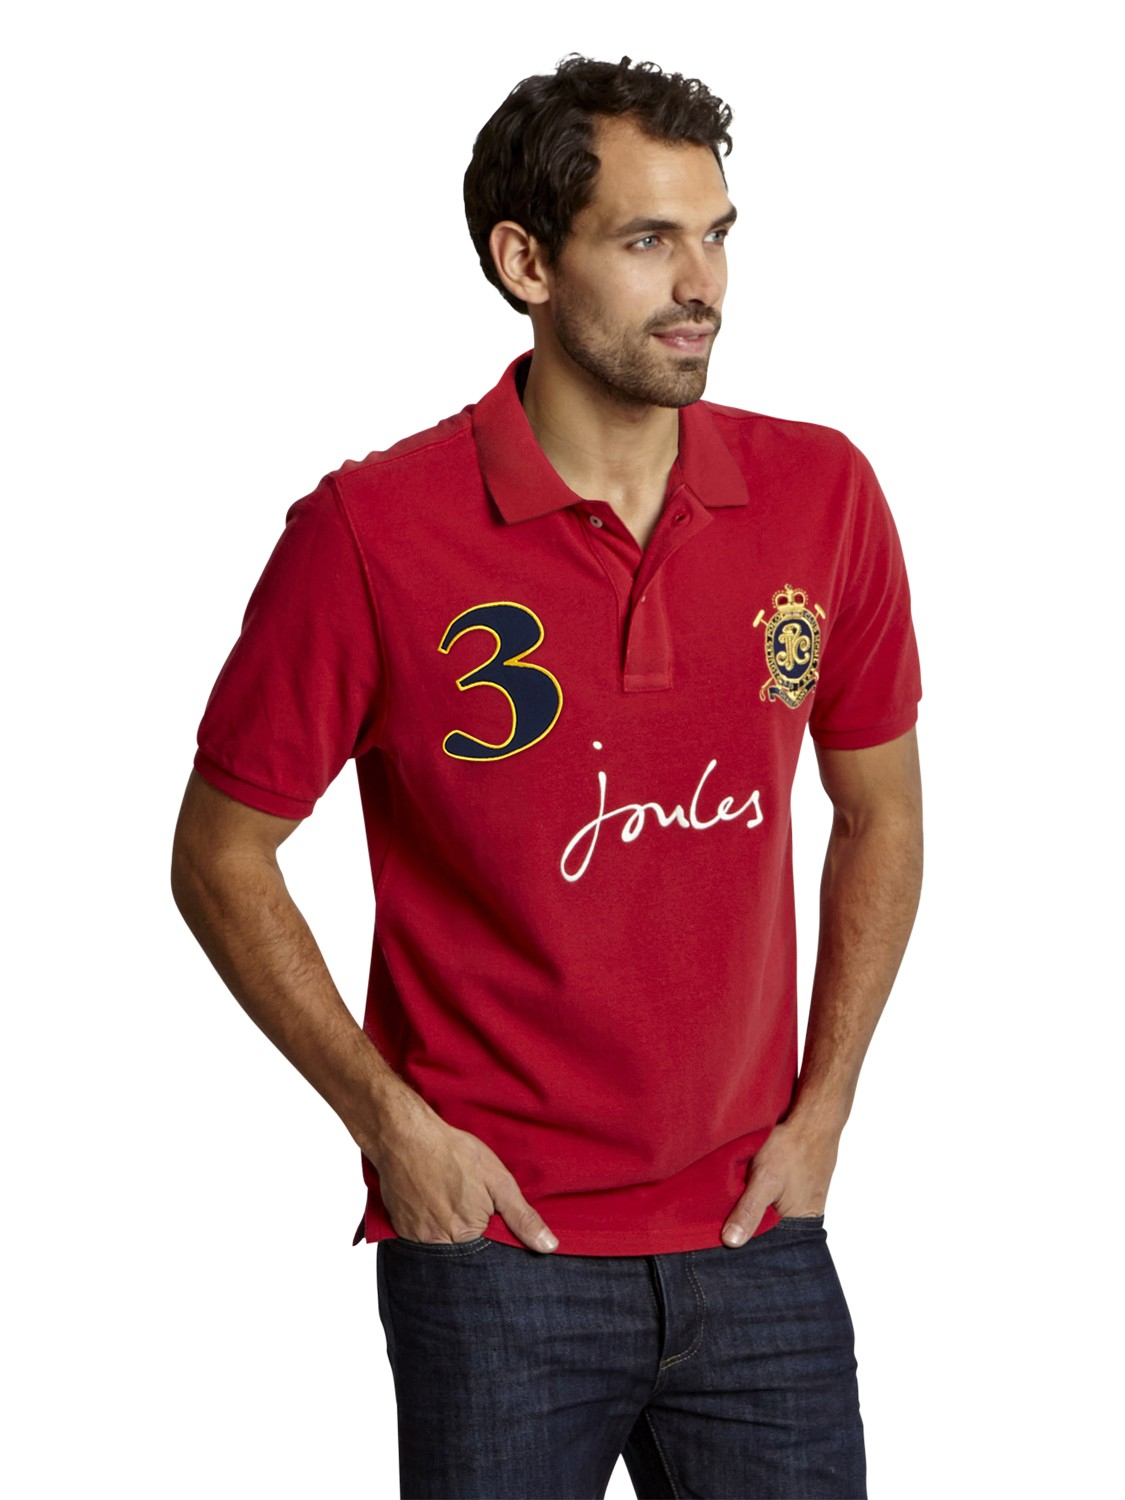 Joules Just Polo Top in Red for Men